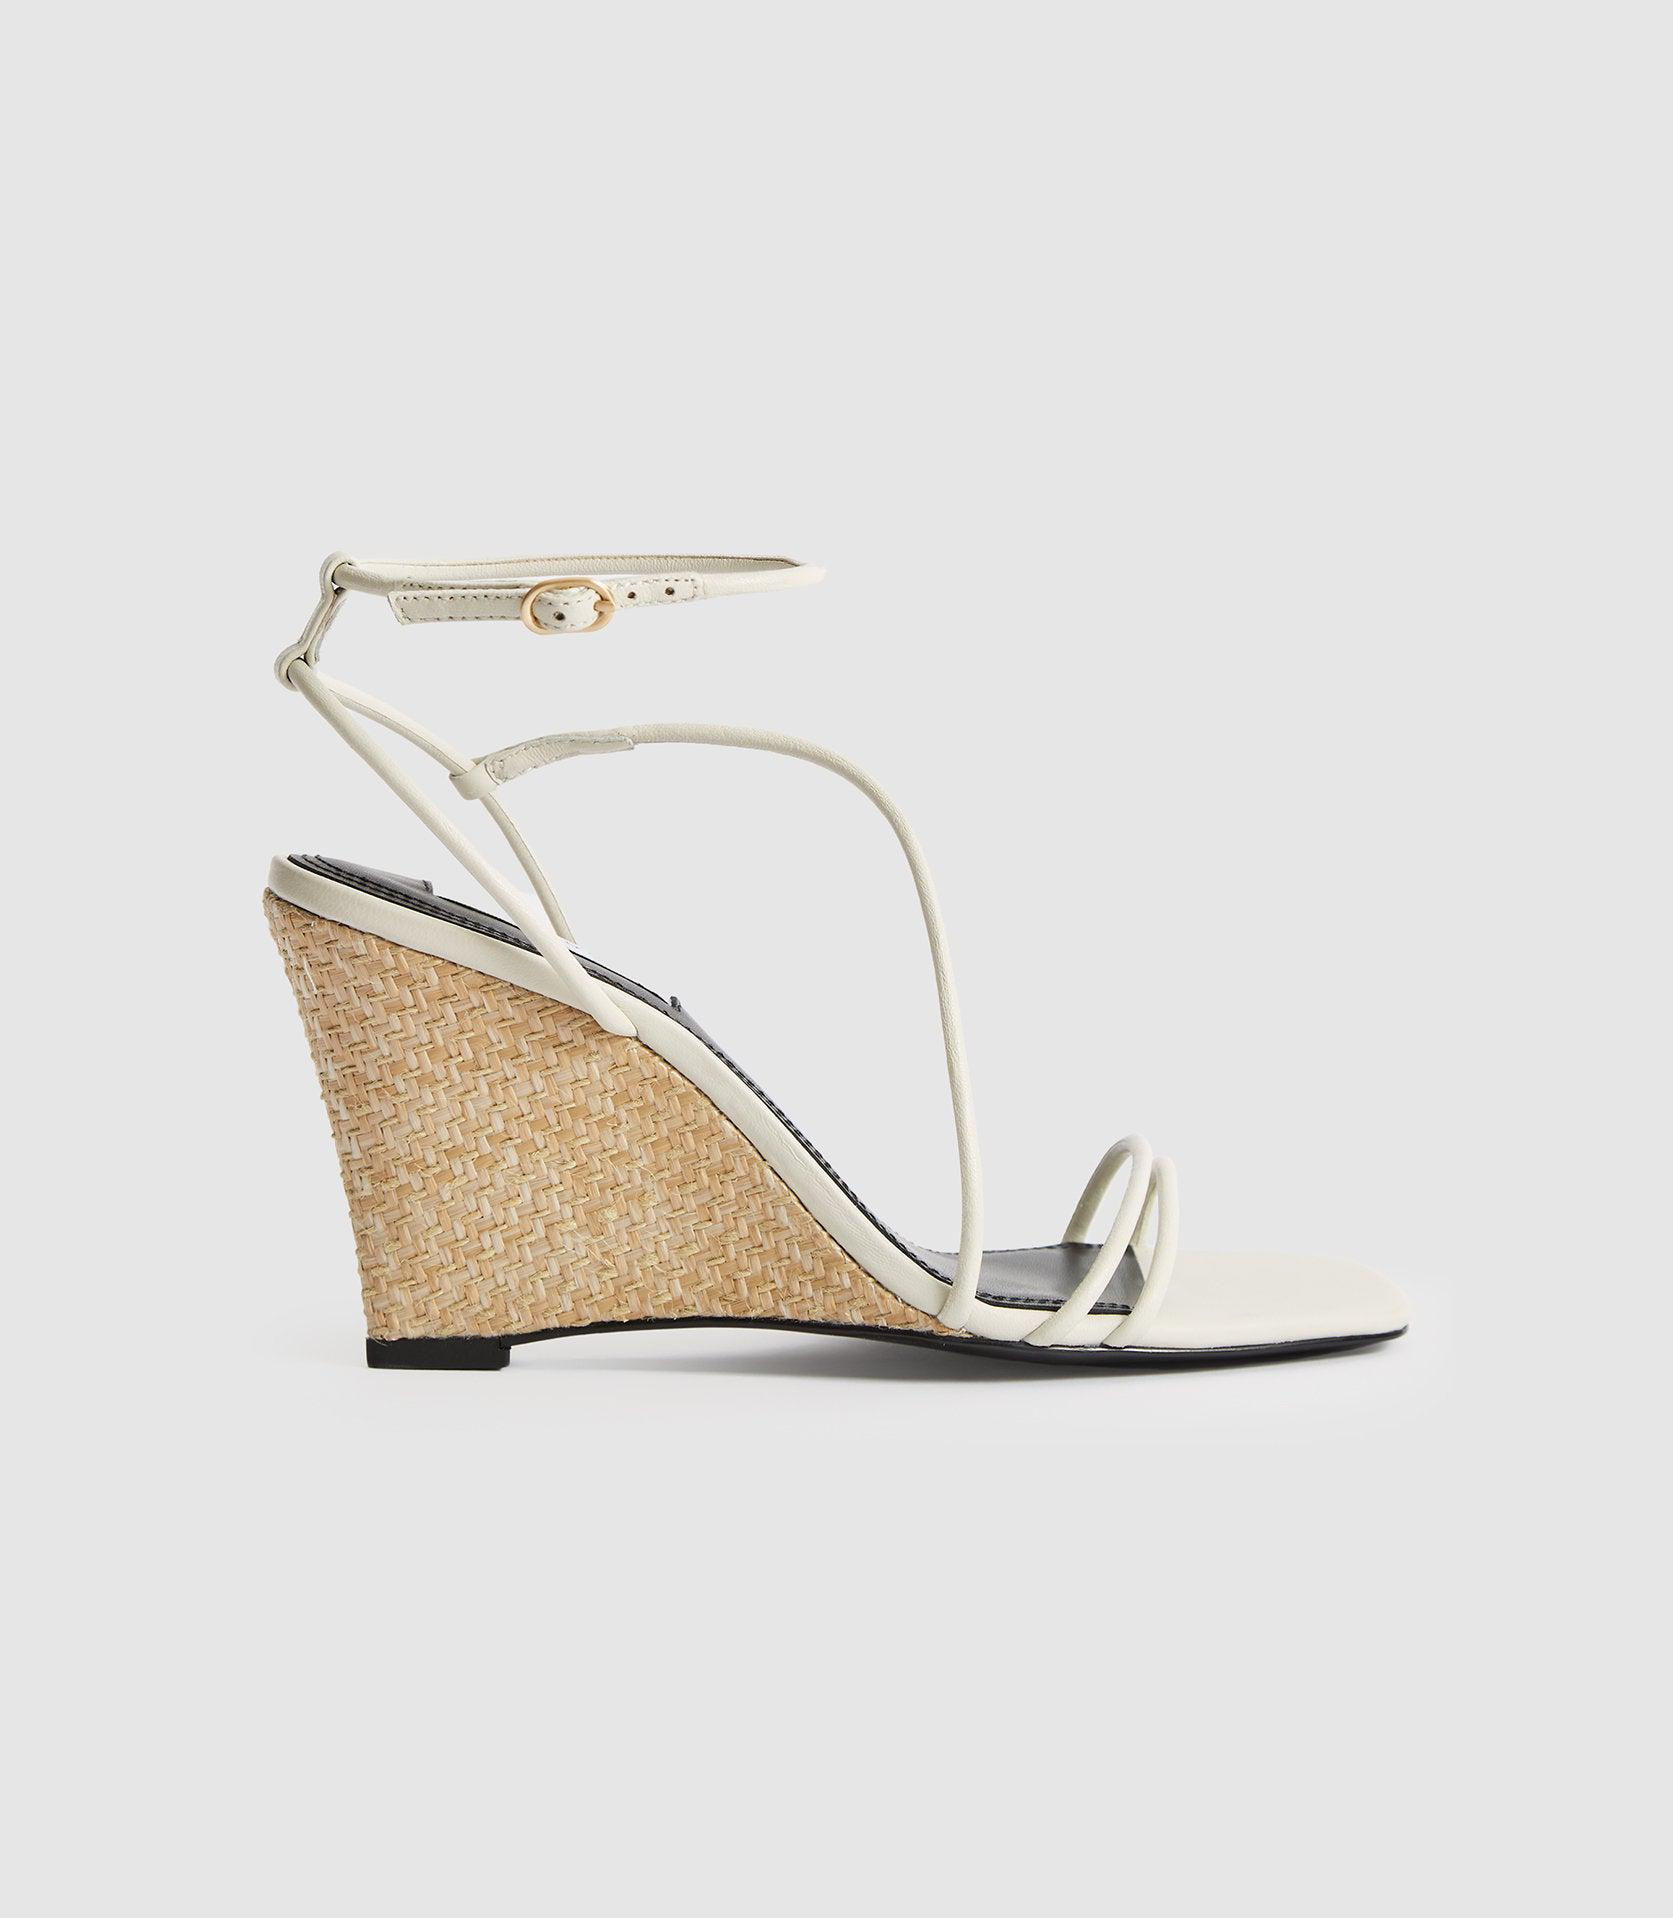 KALI WEDGE - LEATHER STRAPPY WEDGED SANDAL